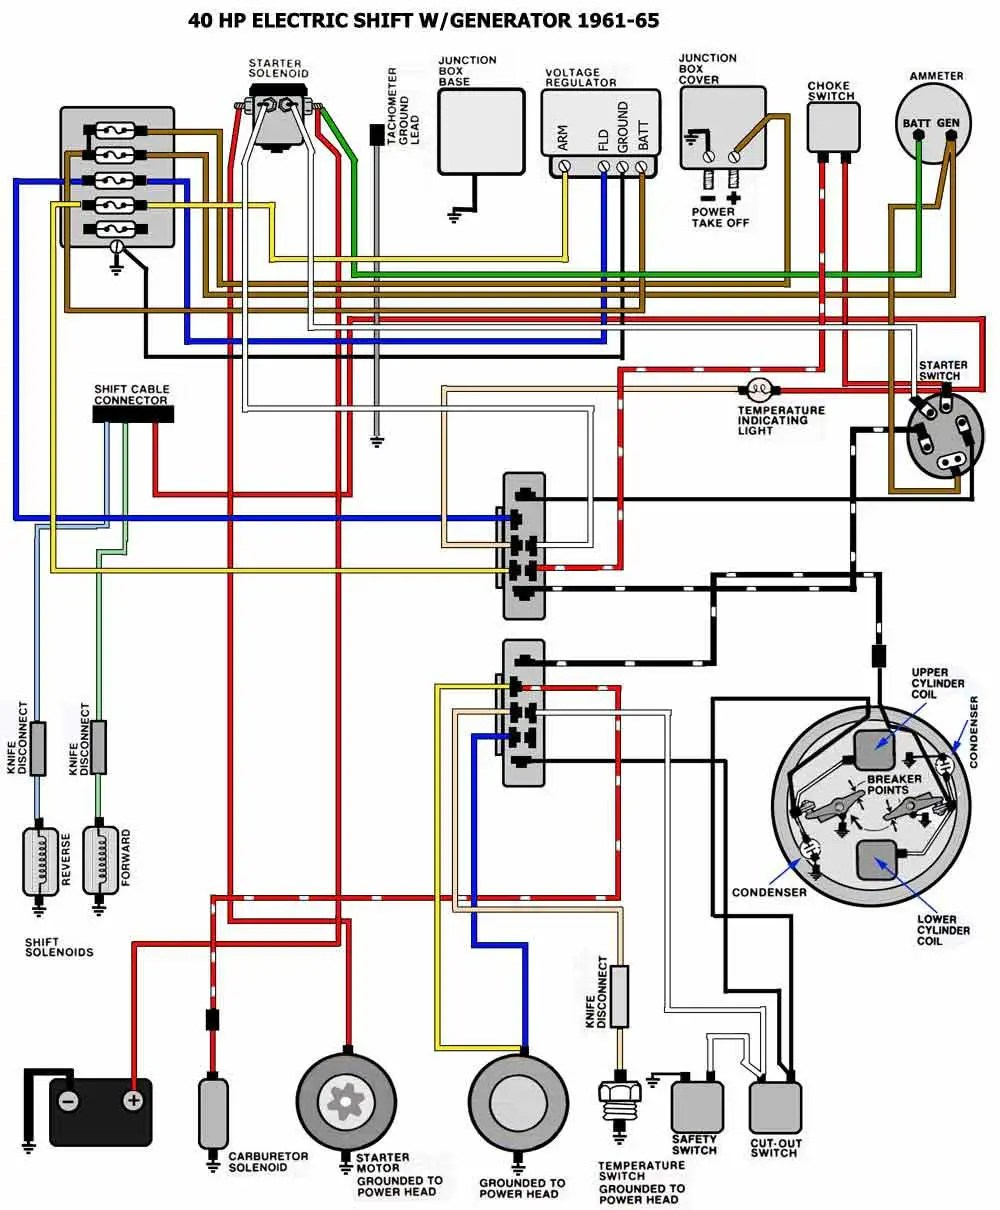 hight resolution of johnson neutral safety switch wiring diagram wiring diagram load johnson neutral safety switch wiring diagram